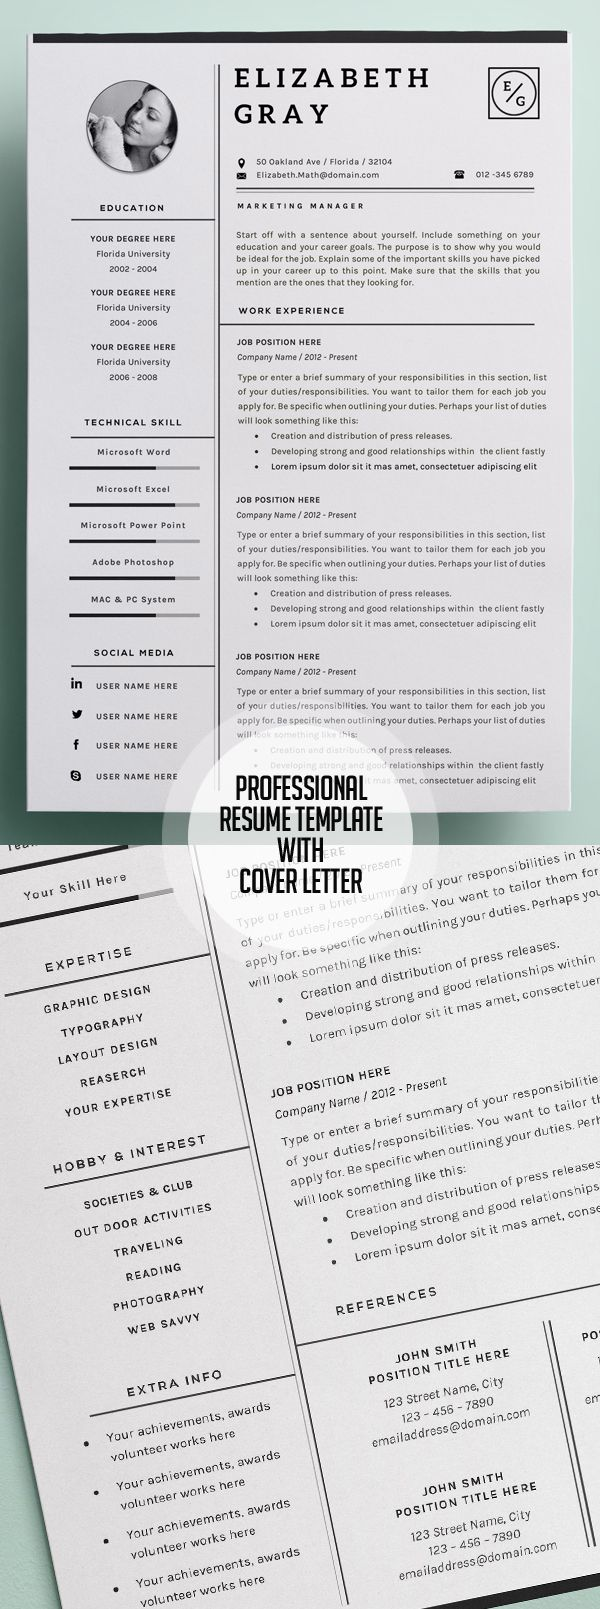 Opposenewapstandardsus  Marvelous  Resume Ideas On Pinterest  Resume Resume Templates And  With Lovable Professional And Modern Resume Template With Page Cover Cvtemplate With Delightful Should I Use Resume Paper Also Volunteer Resume Samples In Addition Other Skills Resume And Housewife Resume As Well As Medical Support Assistant Resume Additionally First Time Resume Examples From Pinterestcom With Opposenewapstandardsus  Lovable  Resume Ideas On Pinterest  Resume Resume Templates And  With Delightful Professional And Modern Resume Template With Page Cover Cvtemplate And Marvelous Should I Use Resume Paper Also Volunteer Resume Samples In Addition Other Skills Resume From Pinterestcom